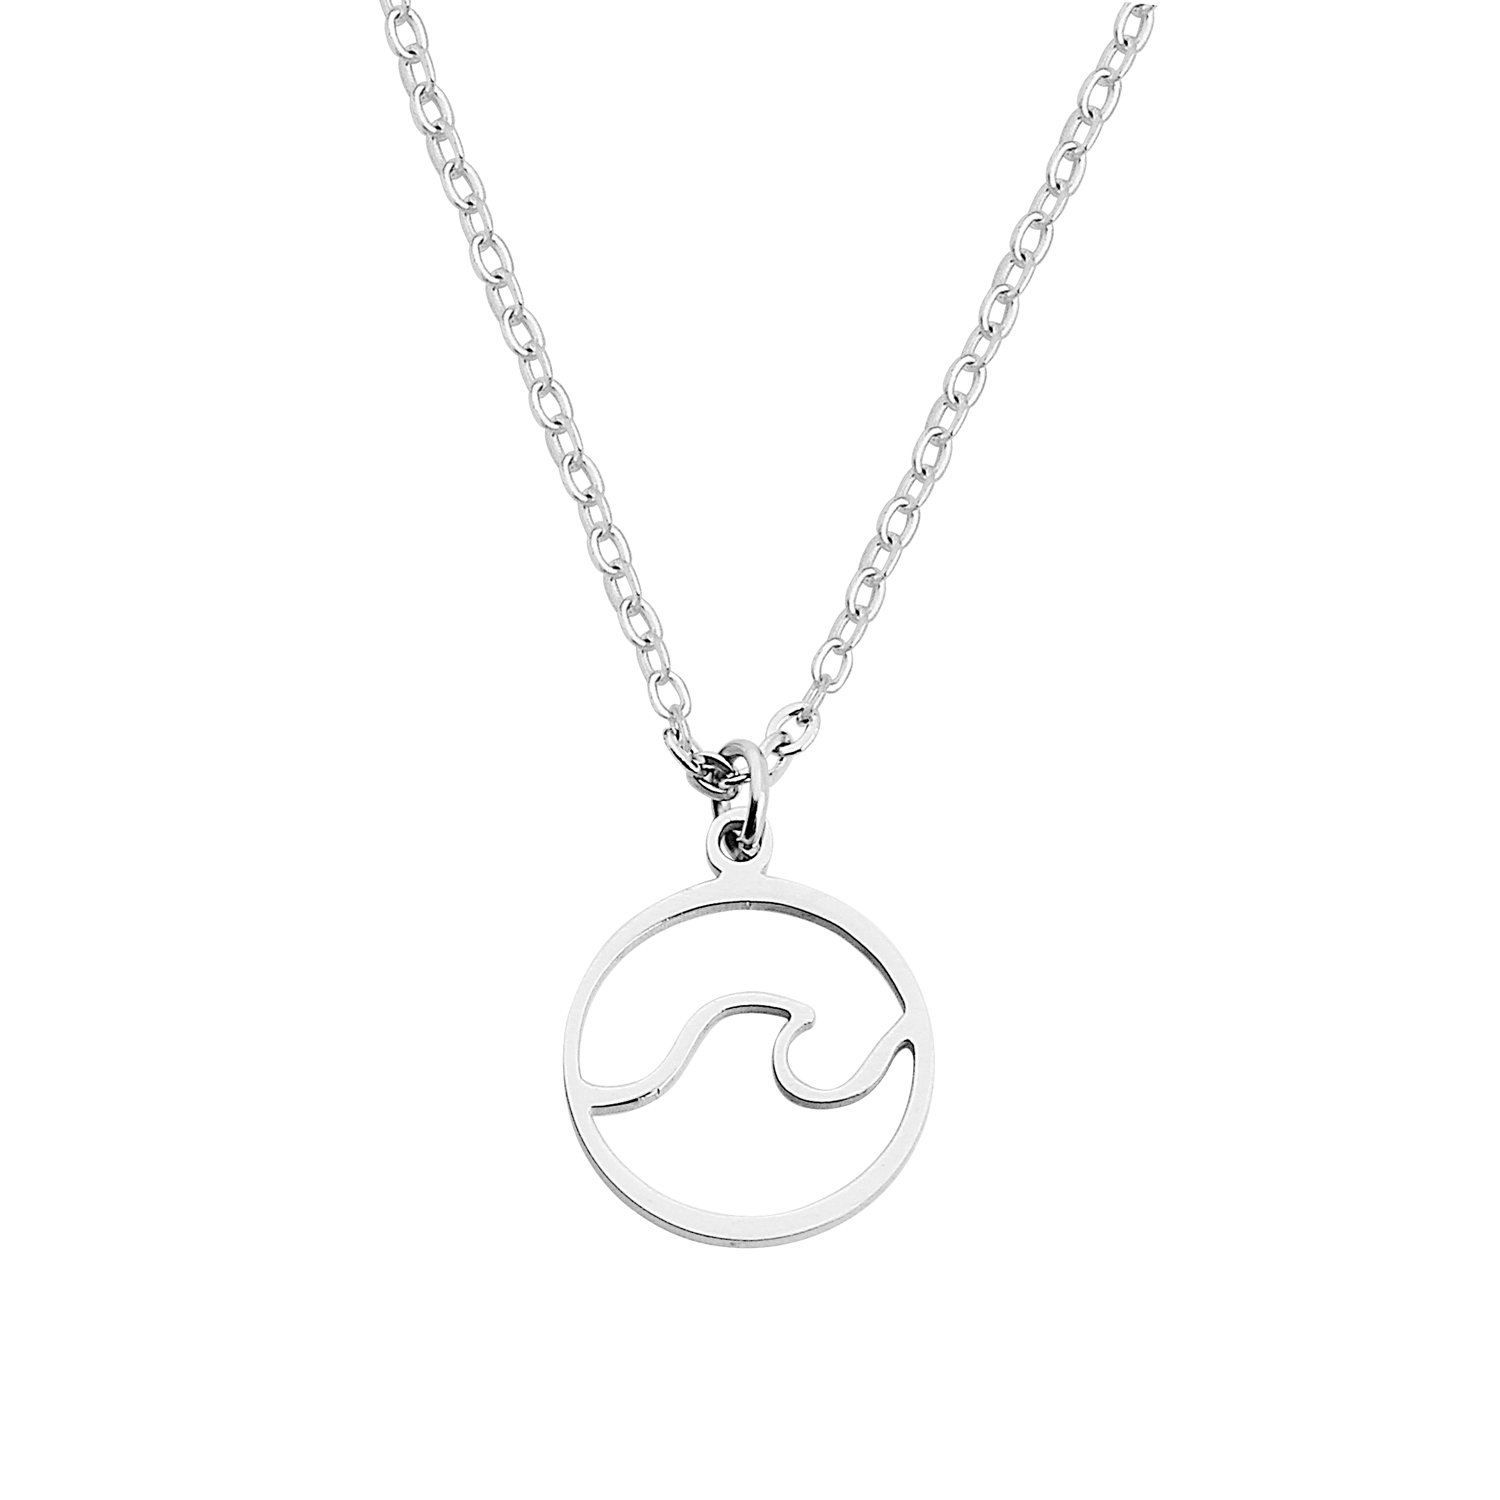 MYOSPARK Tiny Wave Necklace Ocean Wave Jewelry Gift for Surf Beach Lover (Wave Necklace)